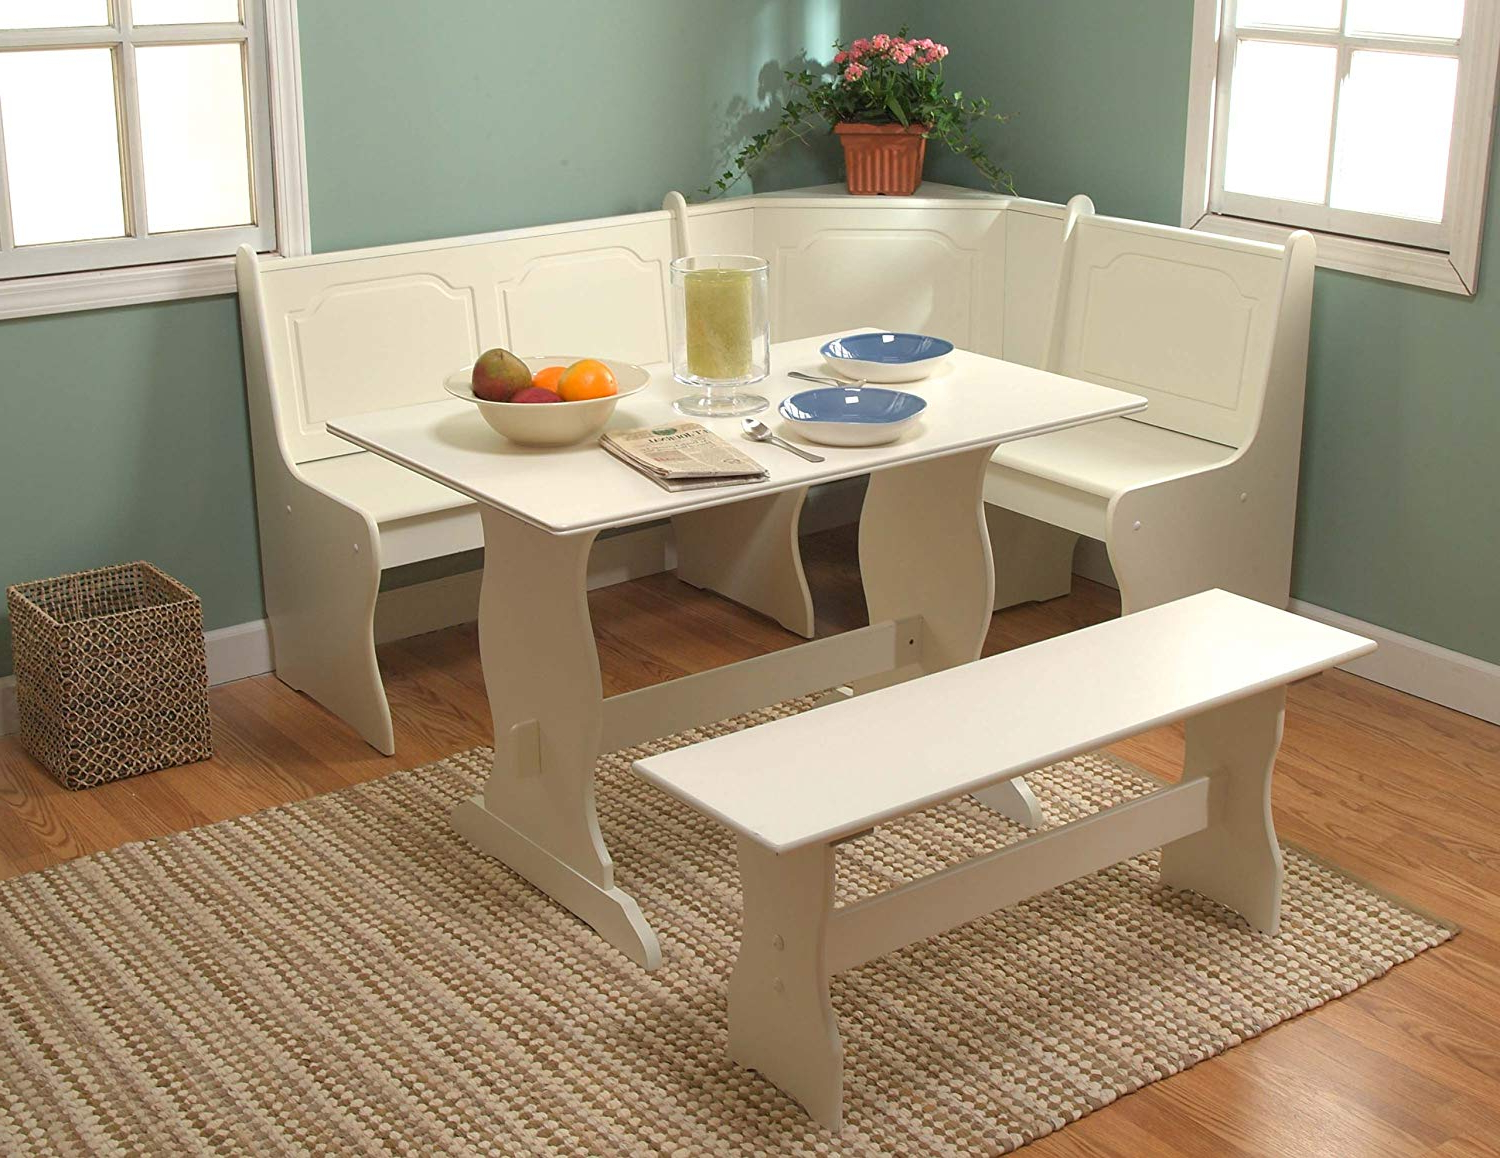 3 Piece Breakfast Dining Sets With Regard To Widely Used Target Marketing Systems 3 Piece Breakfast Nook Dining Set With A L Shaped Storage Bench And A Trestle Style Dining Table And Bench, Antique White (View 14 of 20)